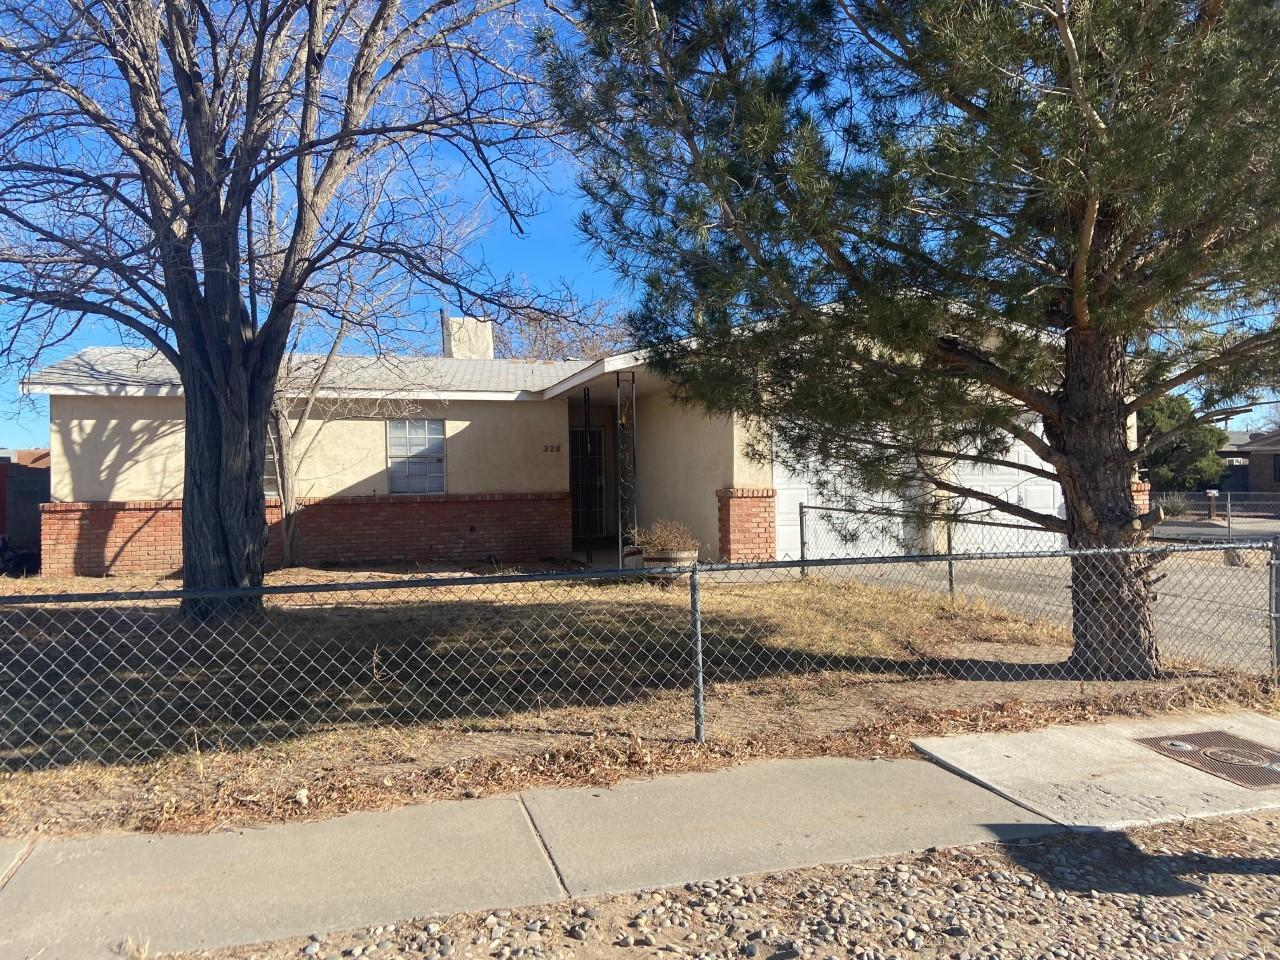 Tons of possibilities with this 3 br, 2 bath, single story home. Great home for someone looking for sweat equity or possible flip.  All offers will be considered beginning 1/18/21.